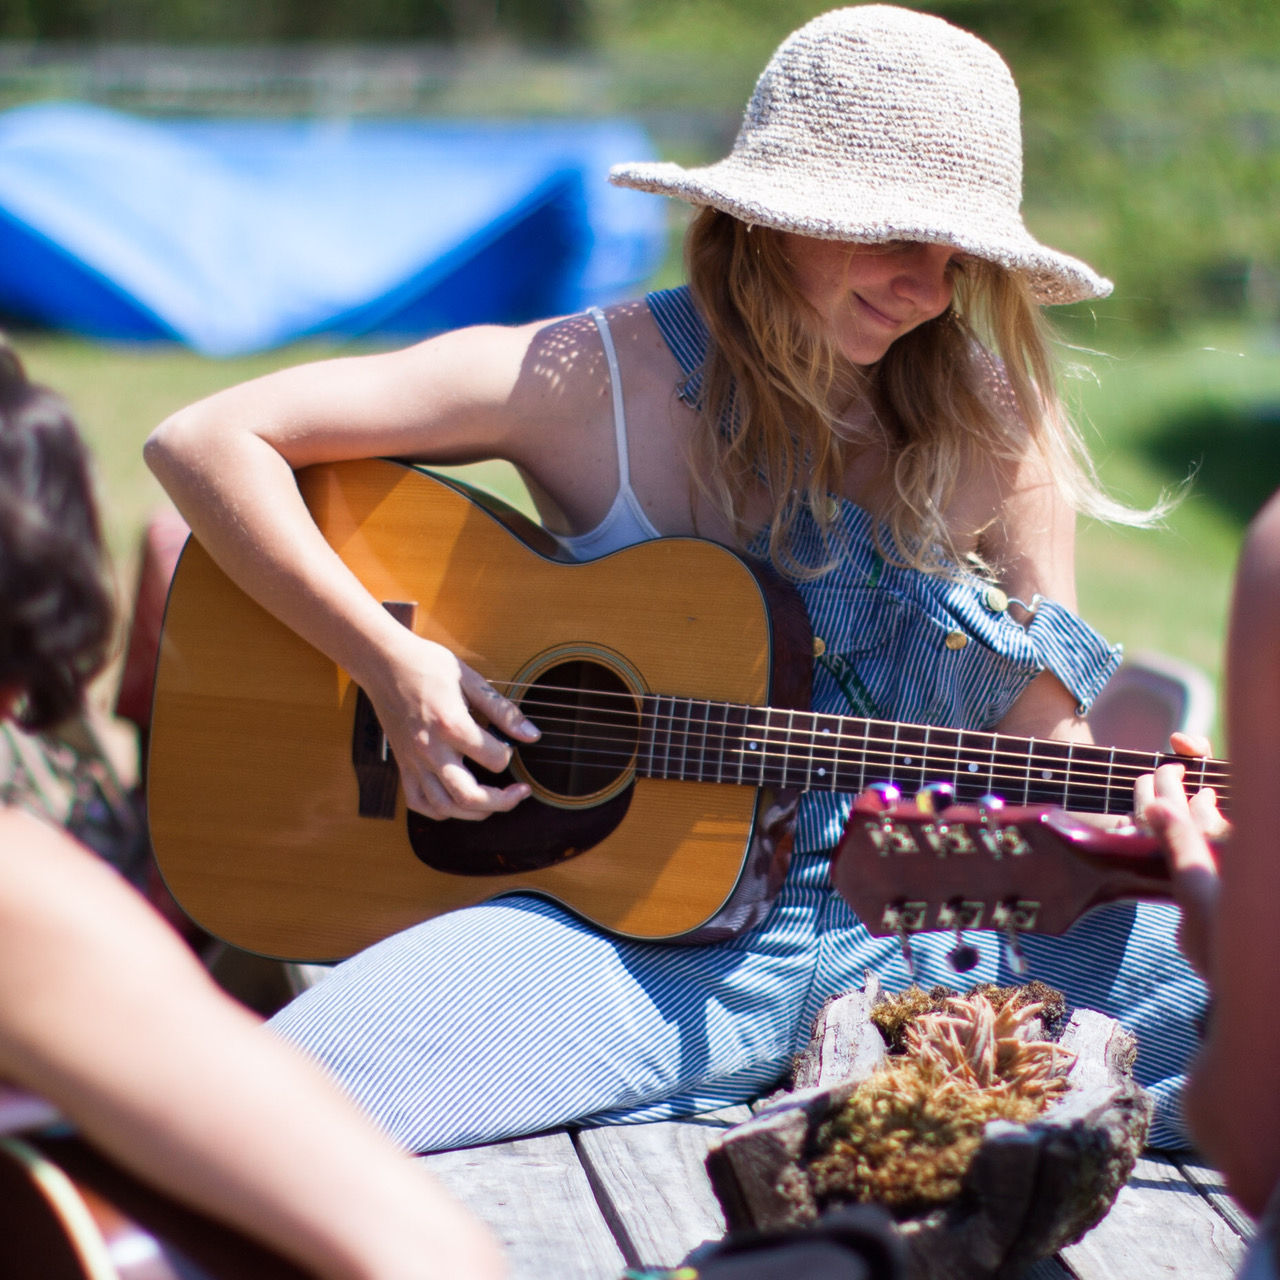 20160420_guitar_fellows_lizzy ross_summer_rebecca downs photography_IMG_6000_lower res.jpg